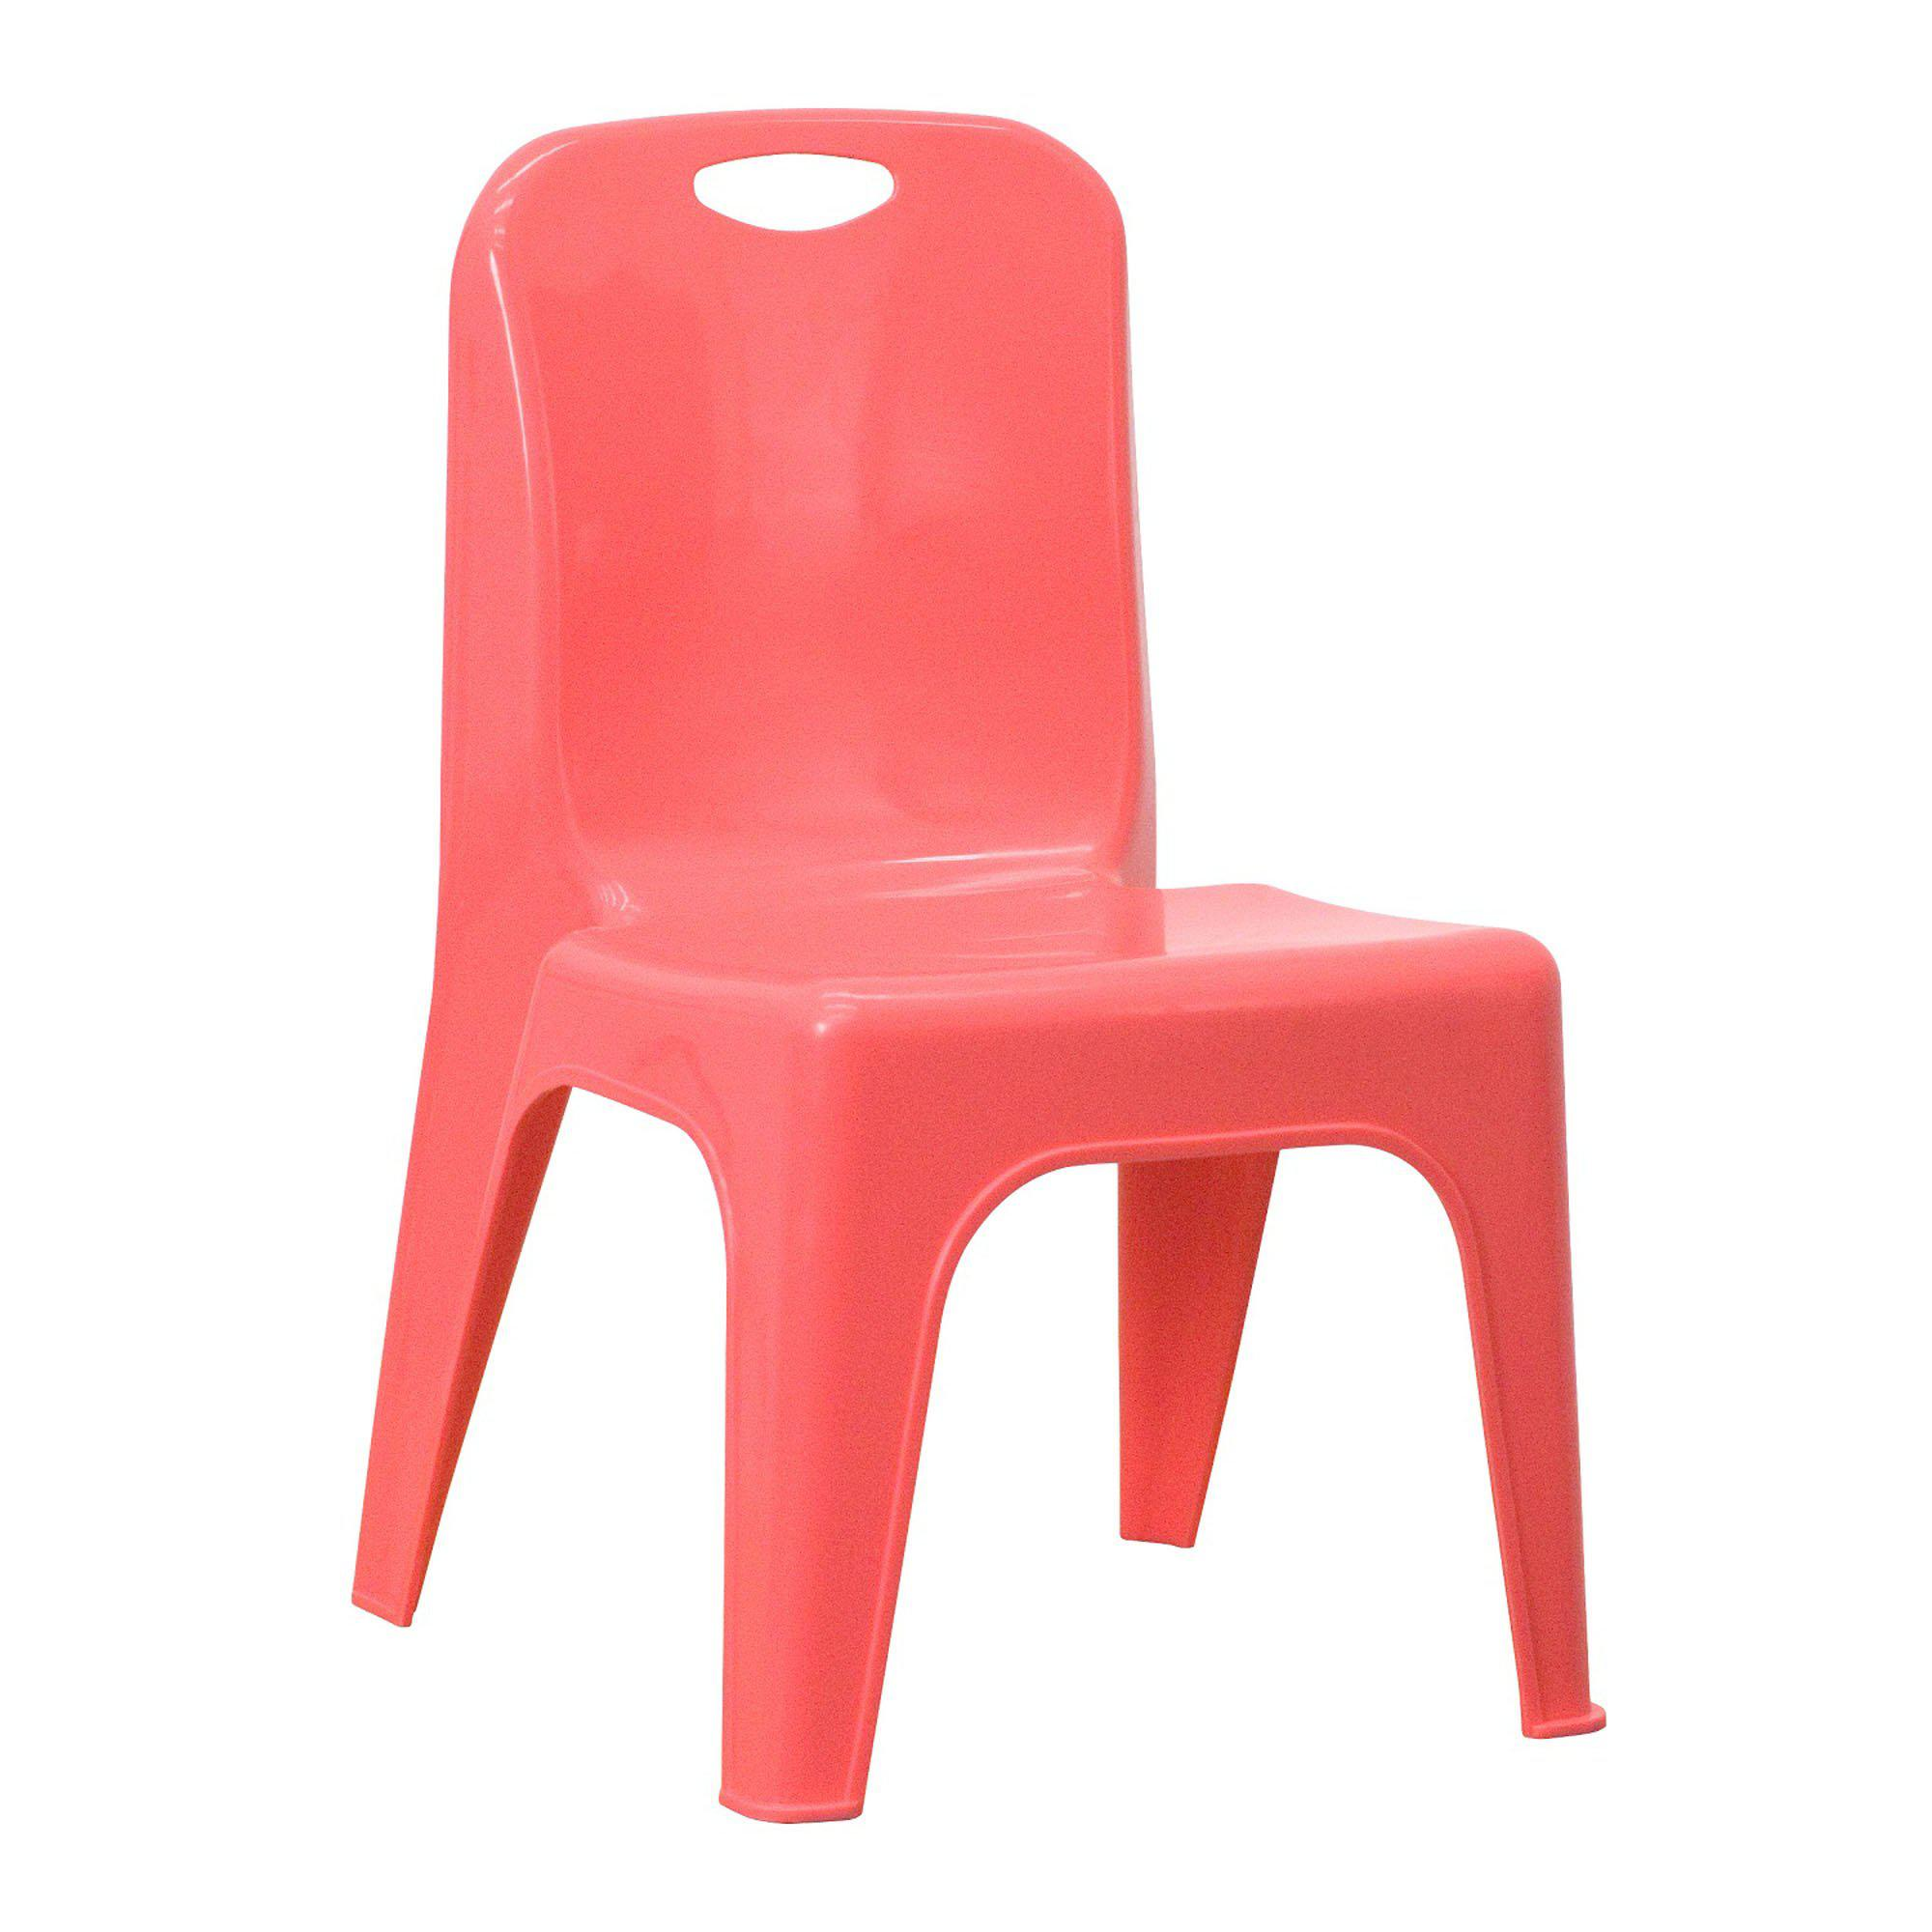 "Nextgen Plastic School Stack Chair, 11"" Seat Height"